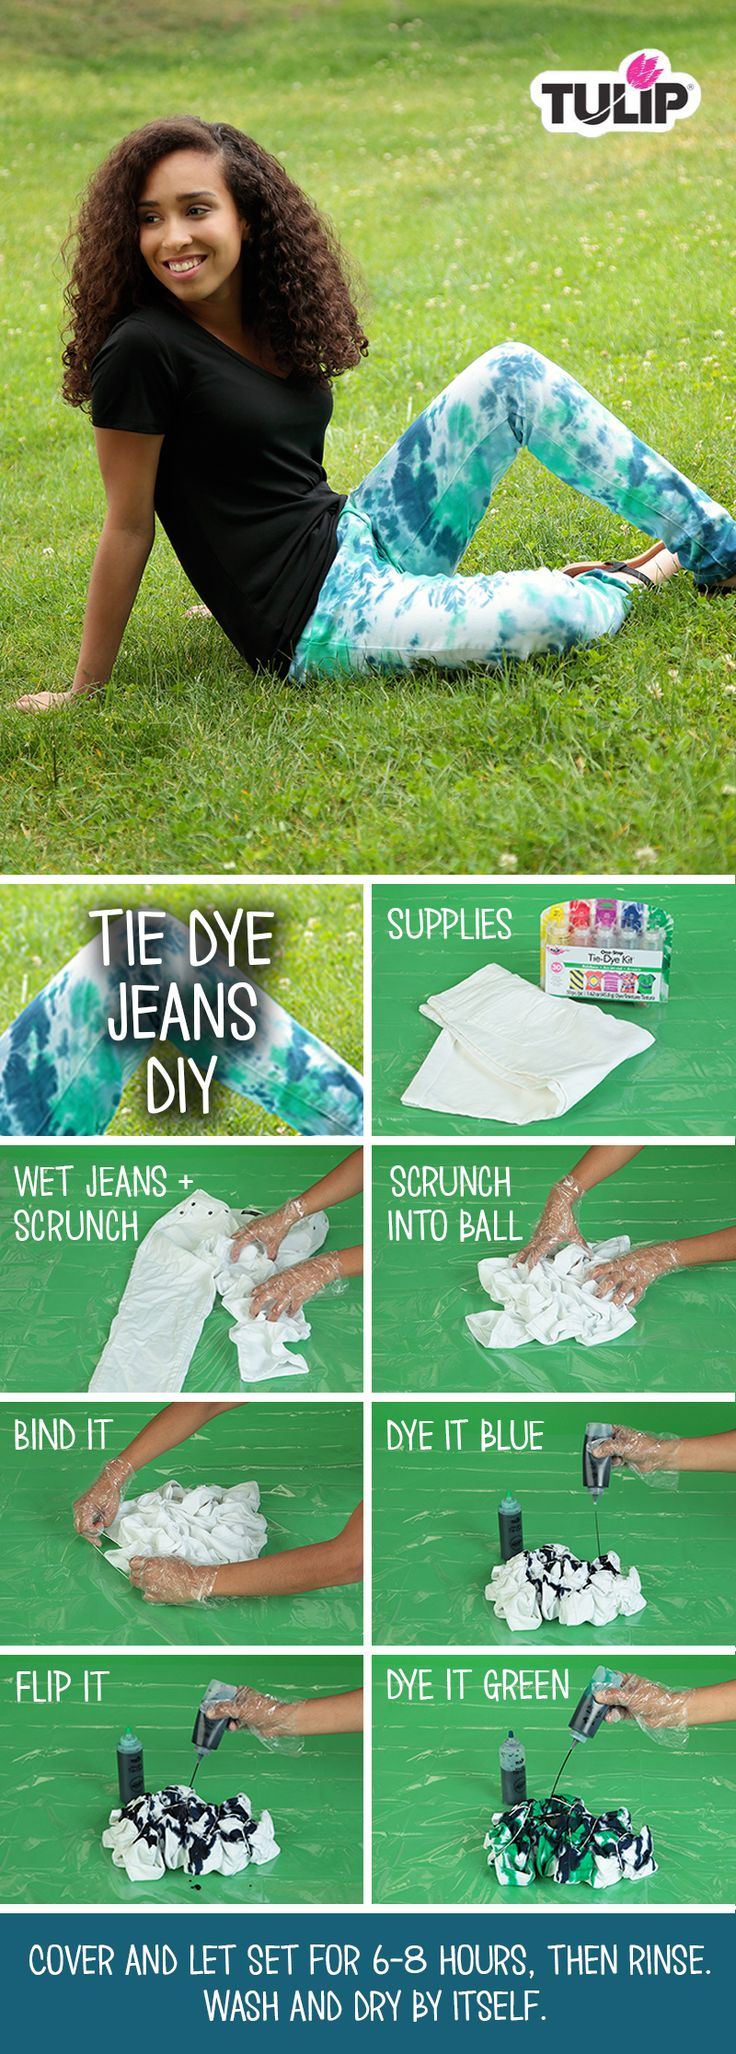 How to Tie Dye Jeans using Tulip One-Step Tie Dye!